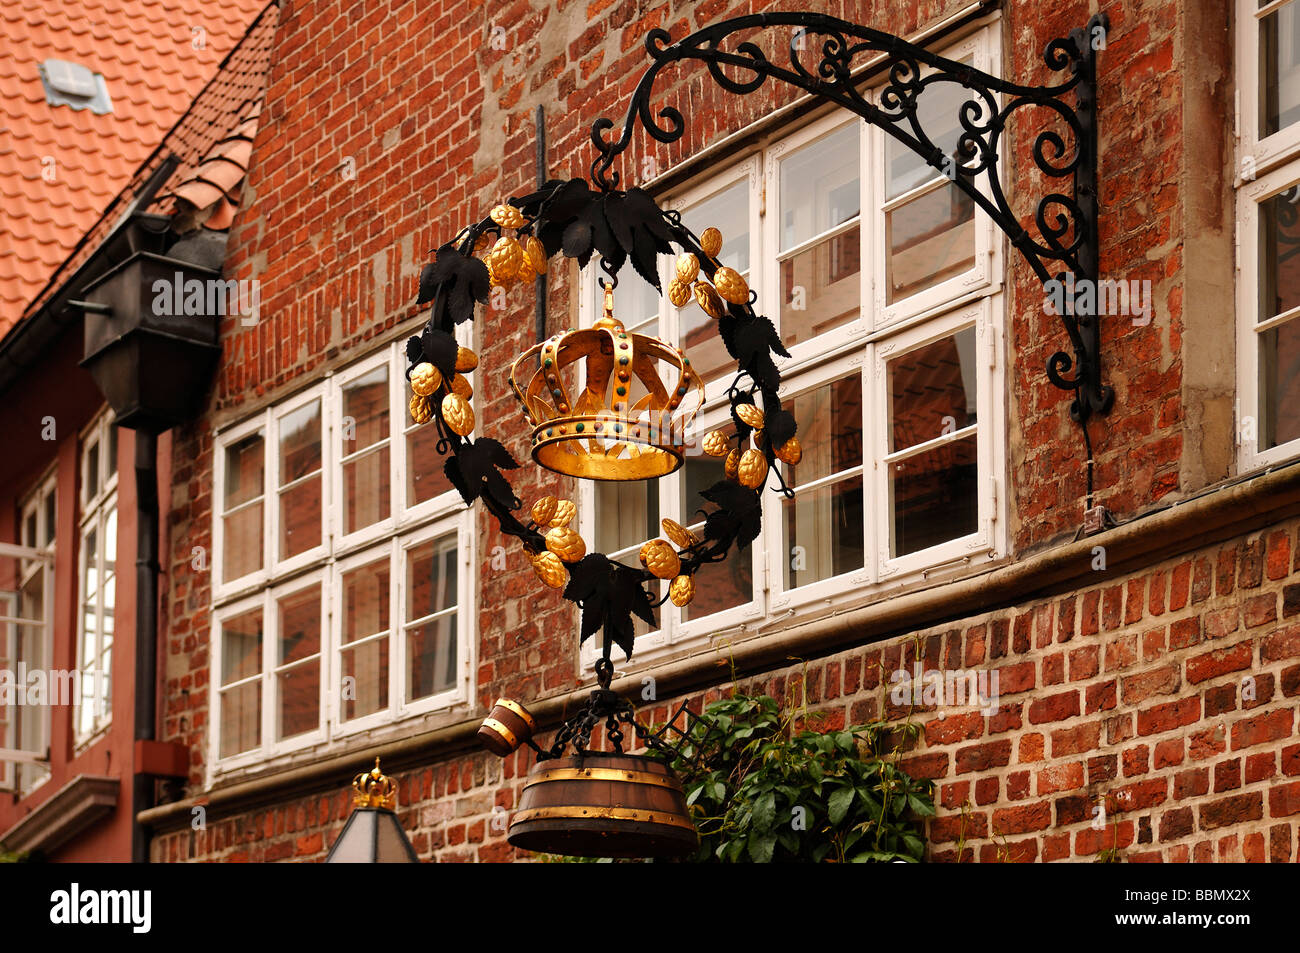 Old Inn hanging sign 'Krone', 'Crown', Lueneburg, Lower Saxony, Germany, Europe - Stock Image